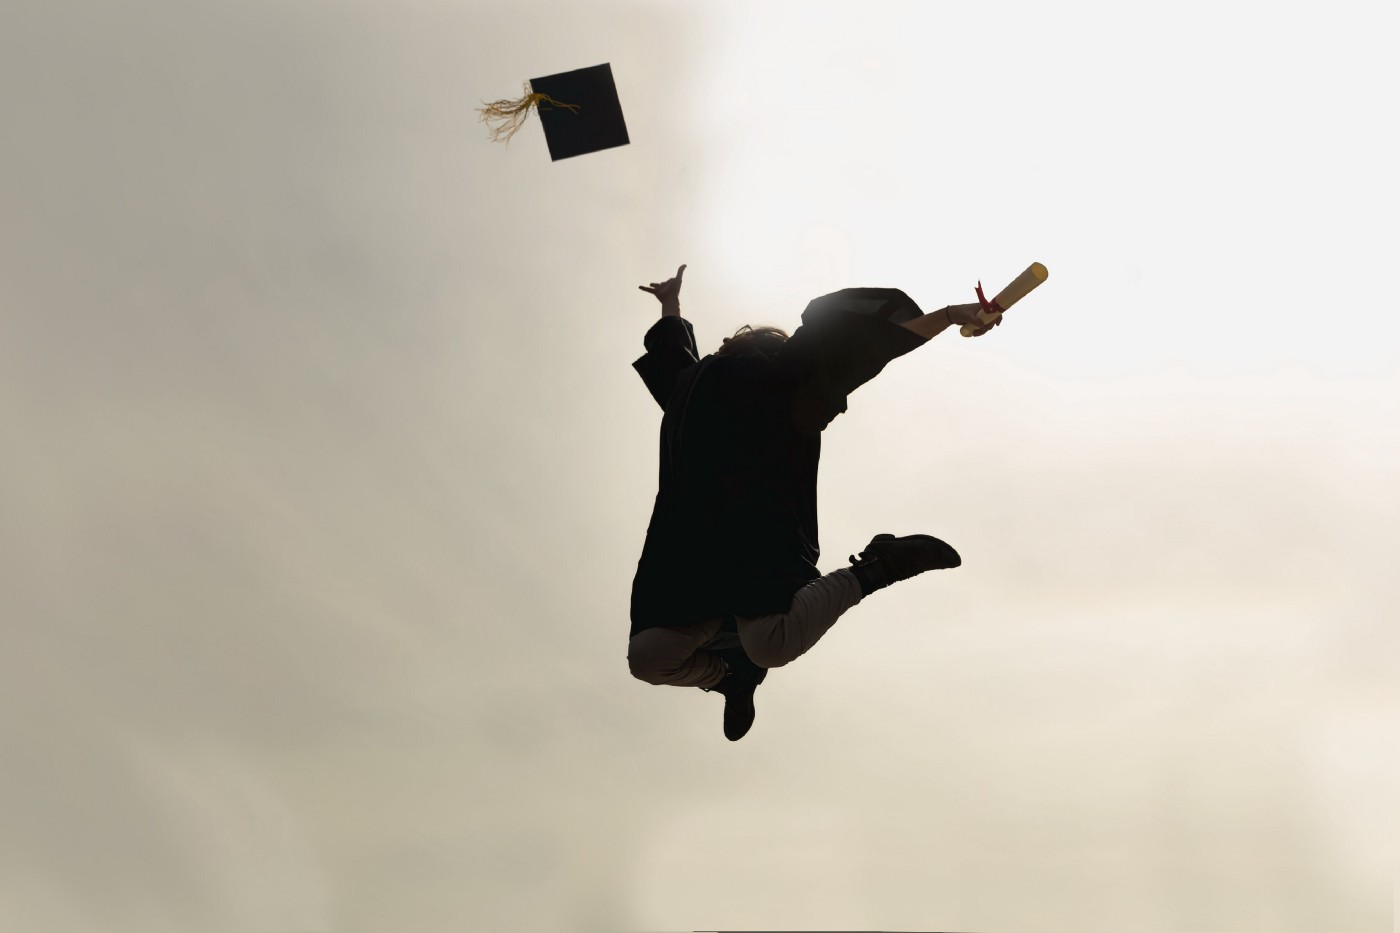 Person wearing graduation gown jumping in the air and throwing their cap